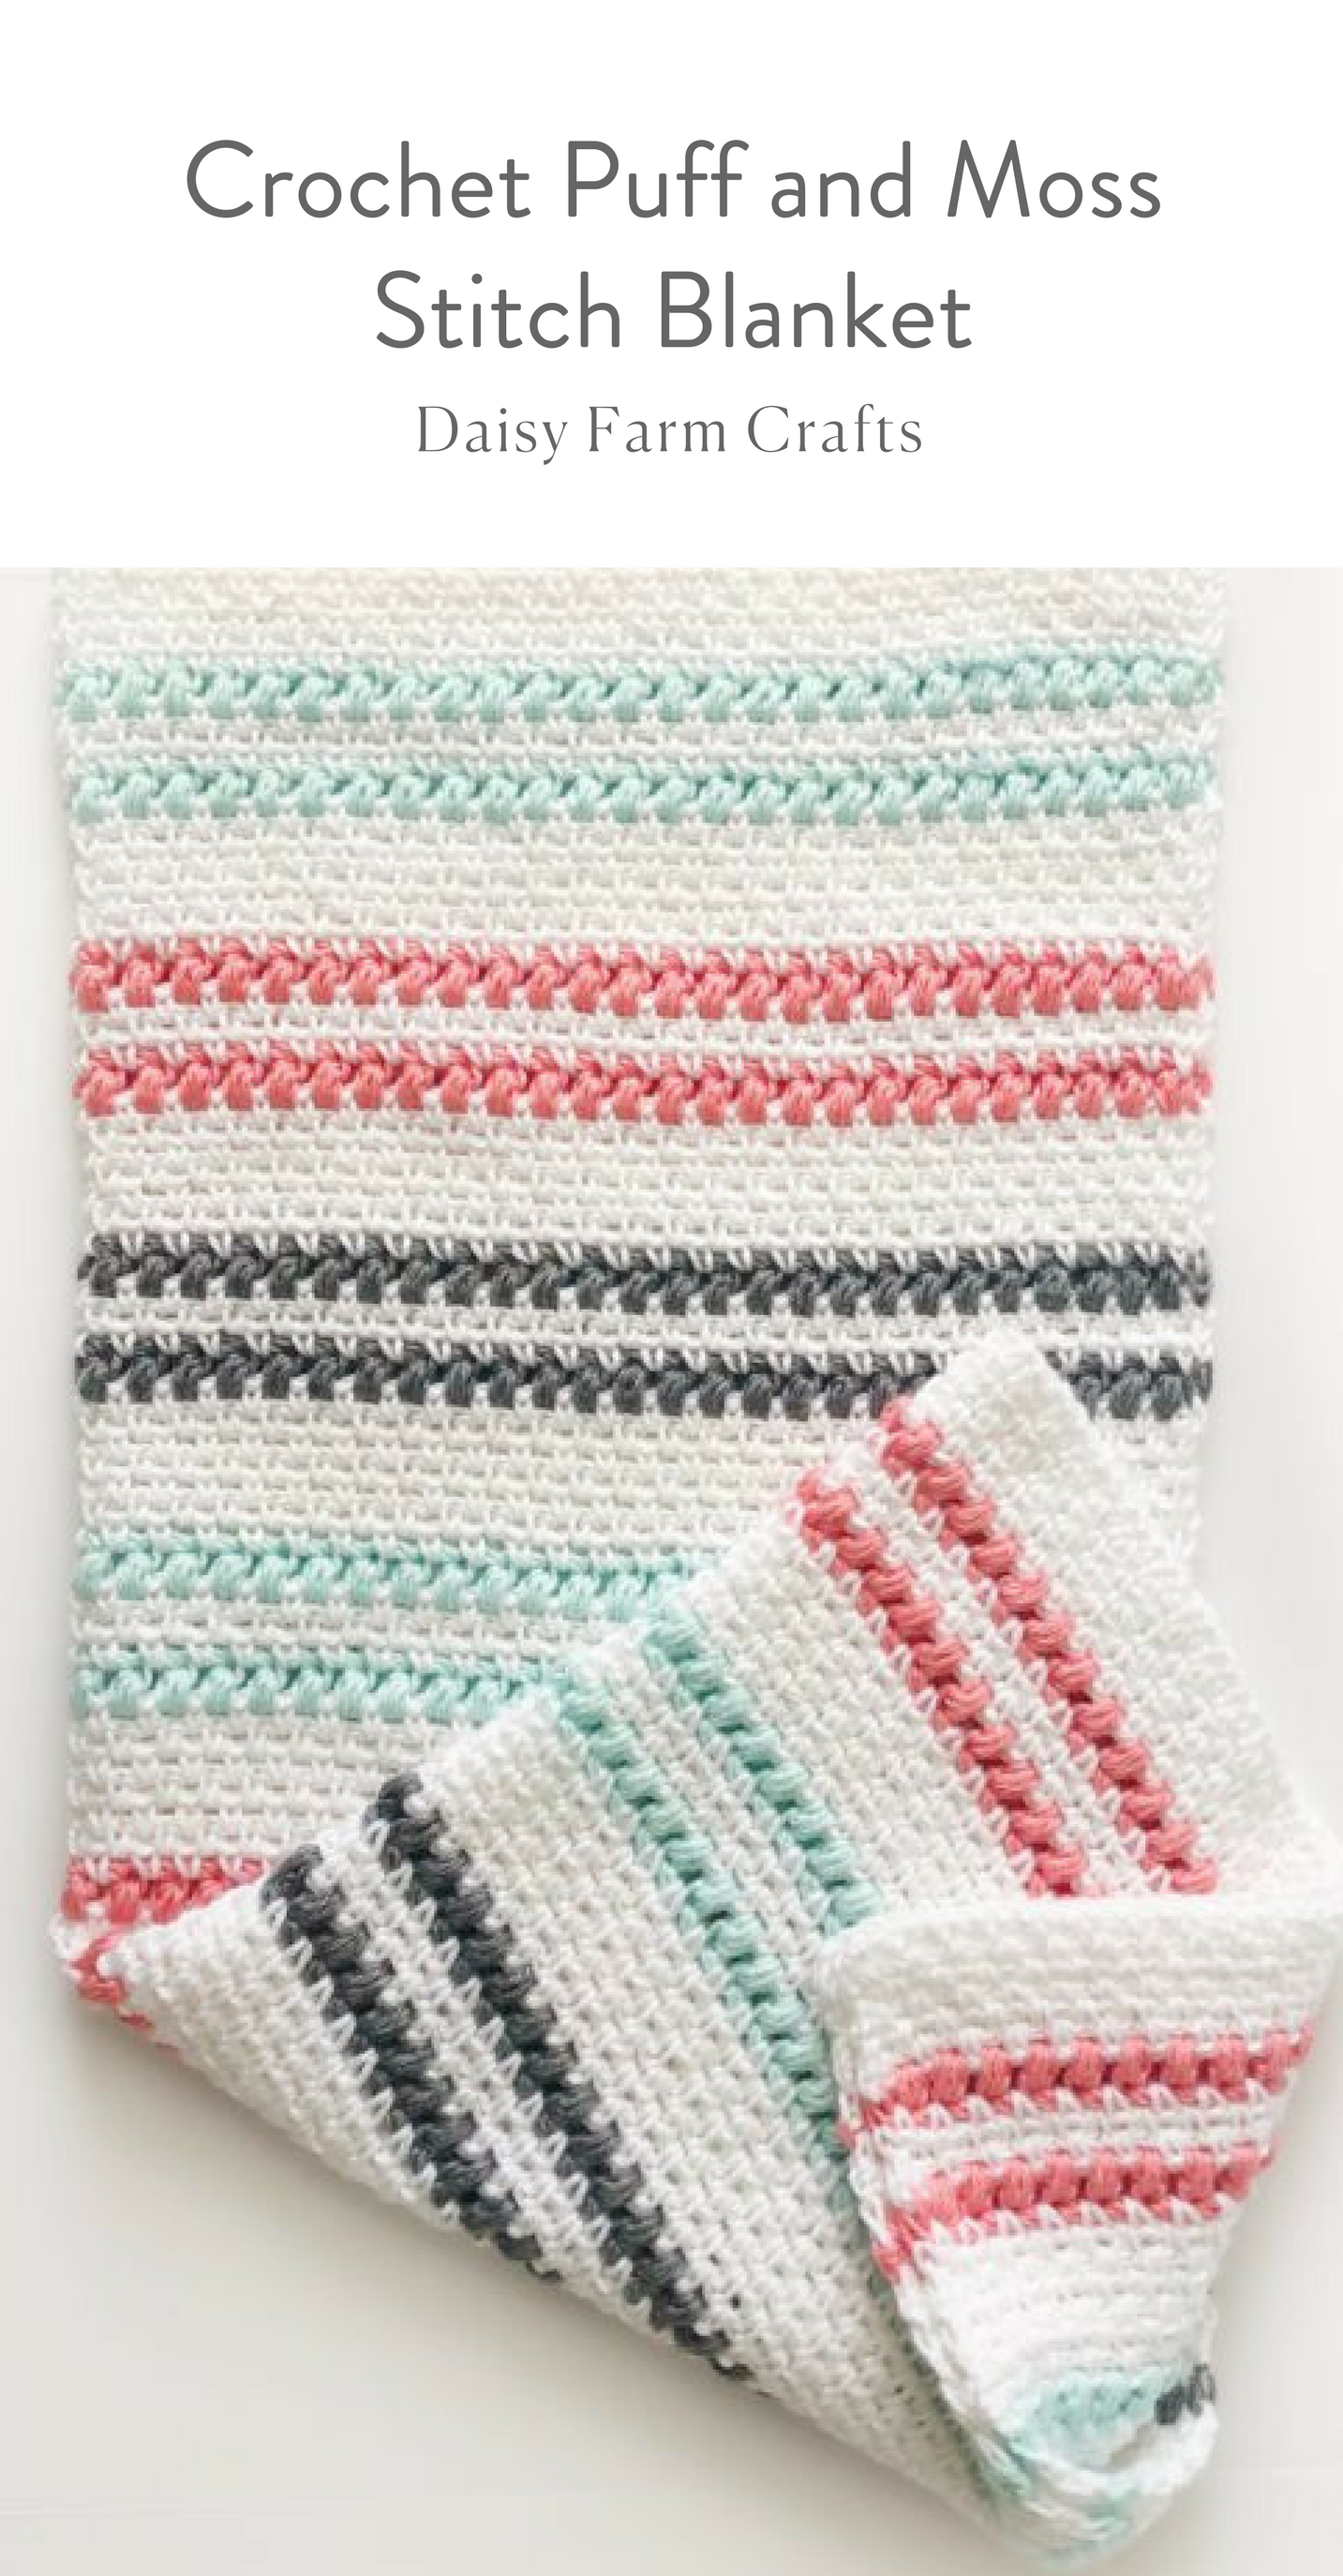 Crochet Puff and Moss Stitch Blanket | Crochet patterns | Pinterest ...